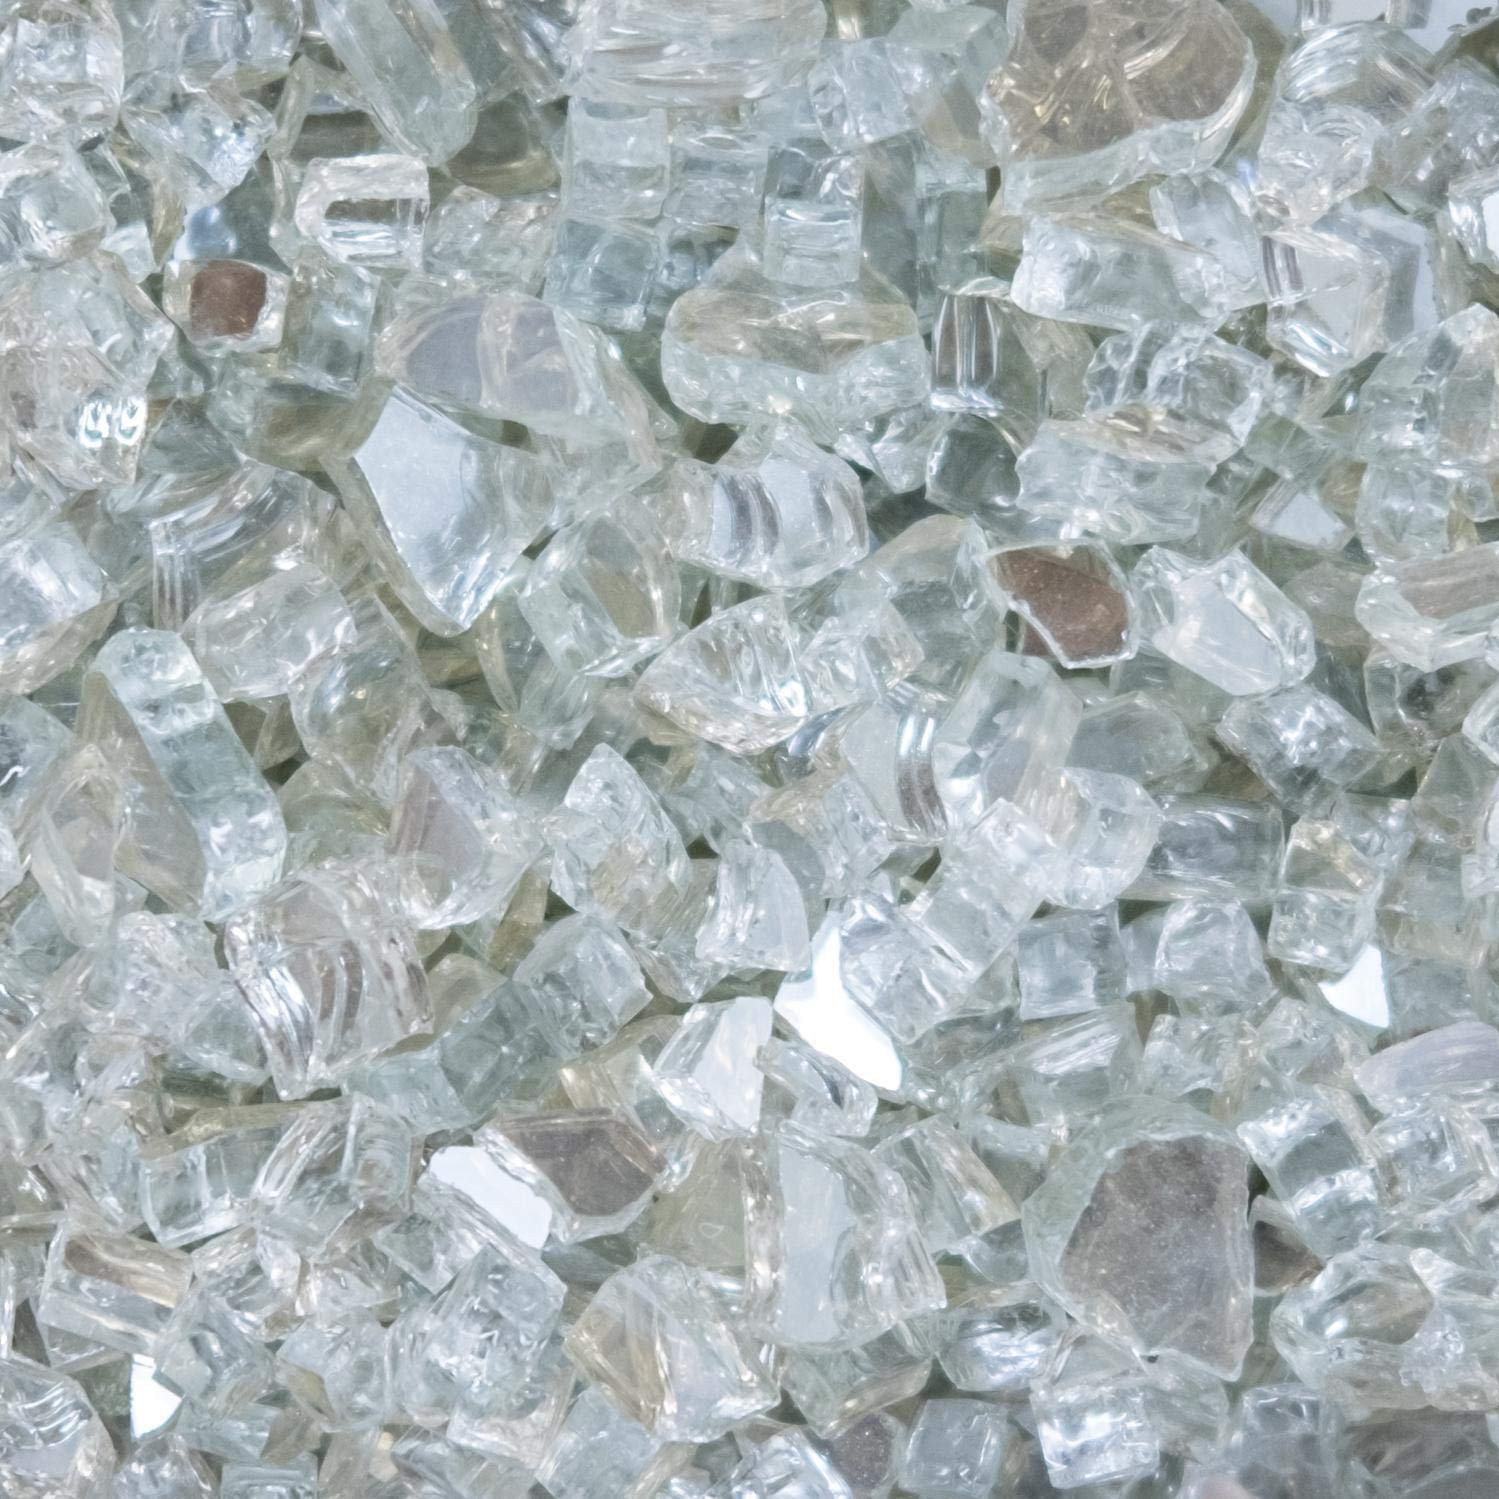 Lakeview Outdoor Designs 1/4-Inch Ice Clear Reflective Fire Glass - 70 Pounds